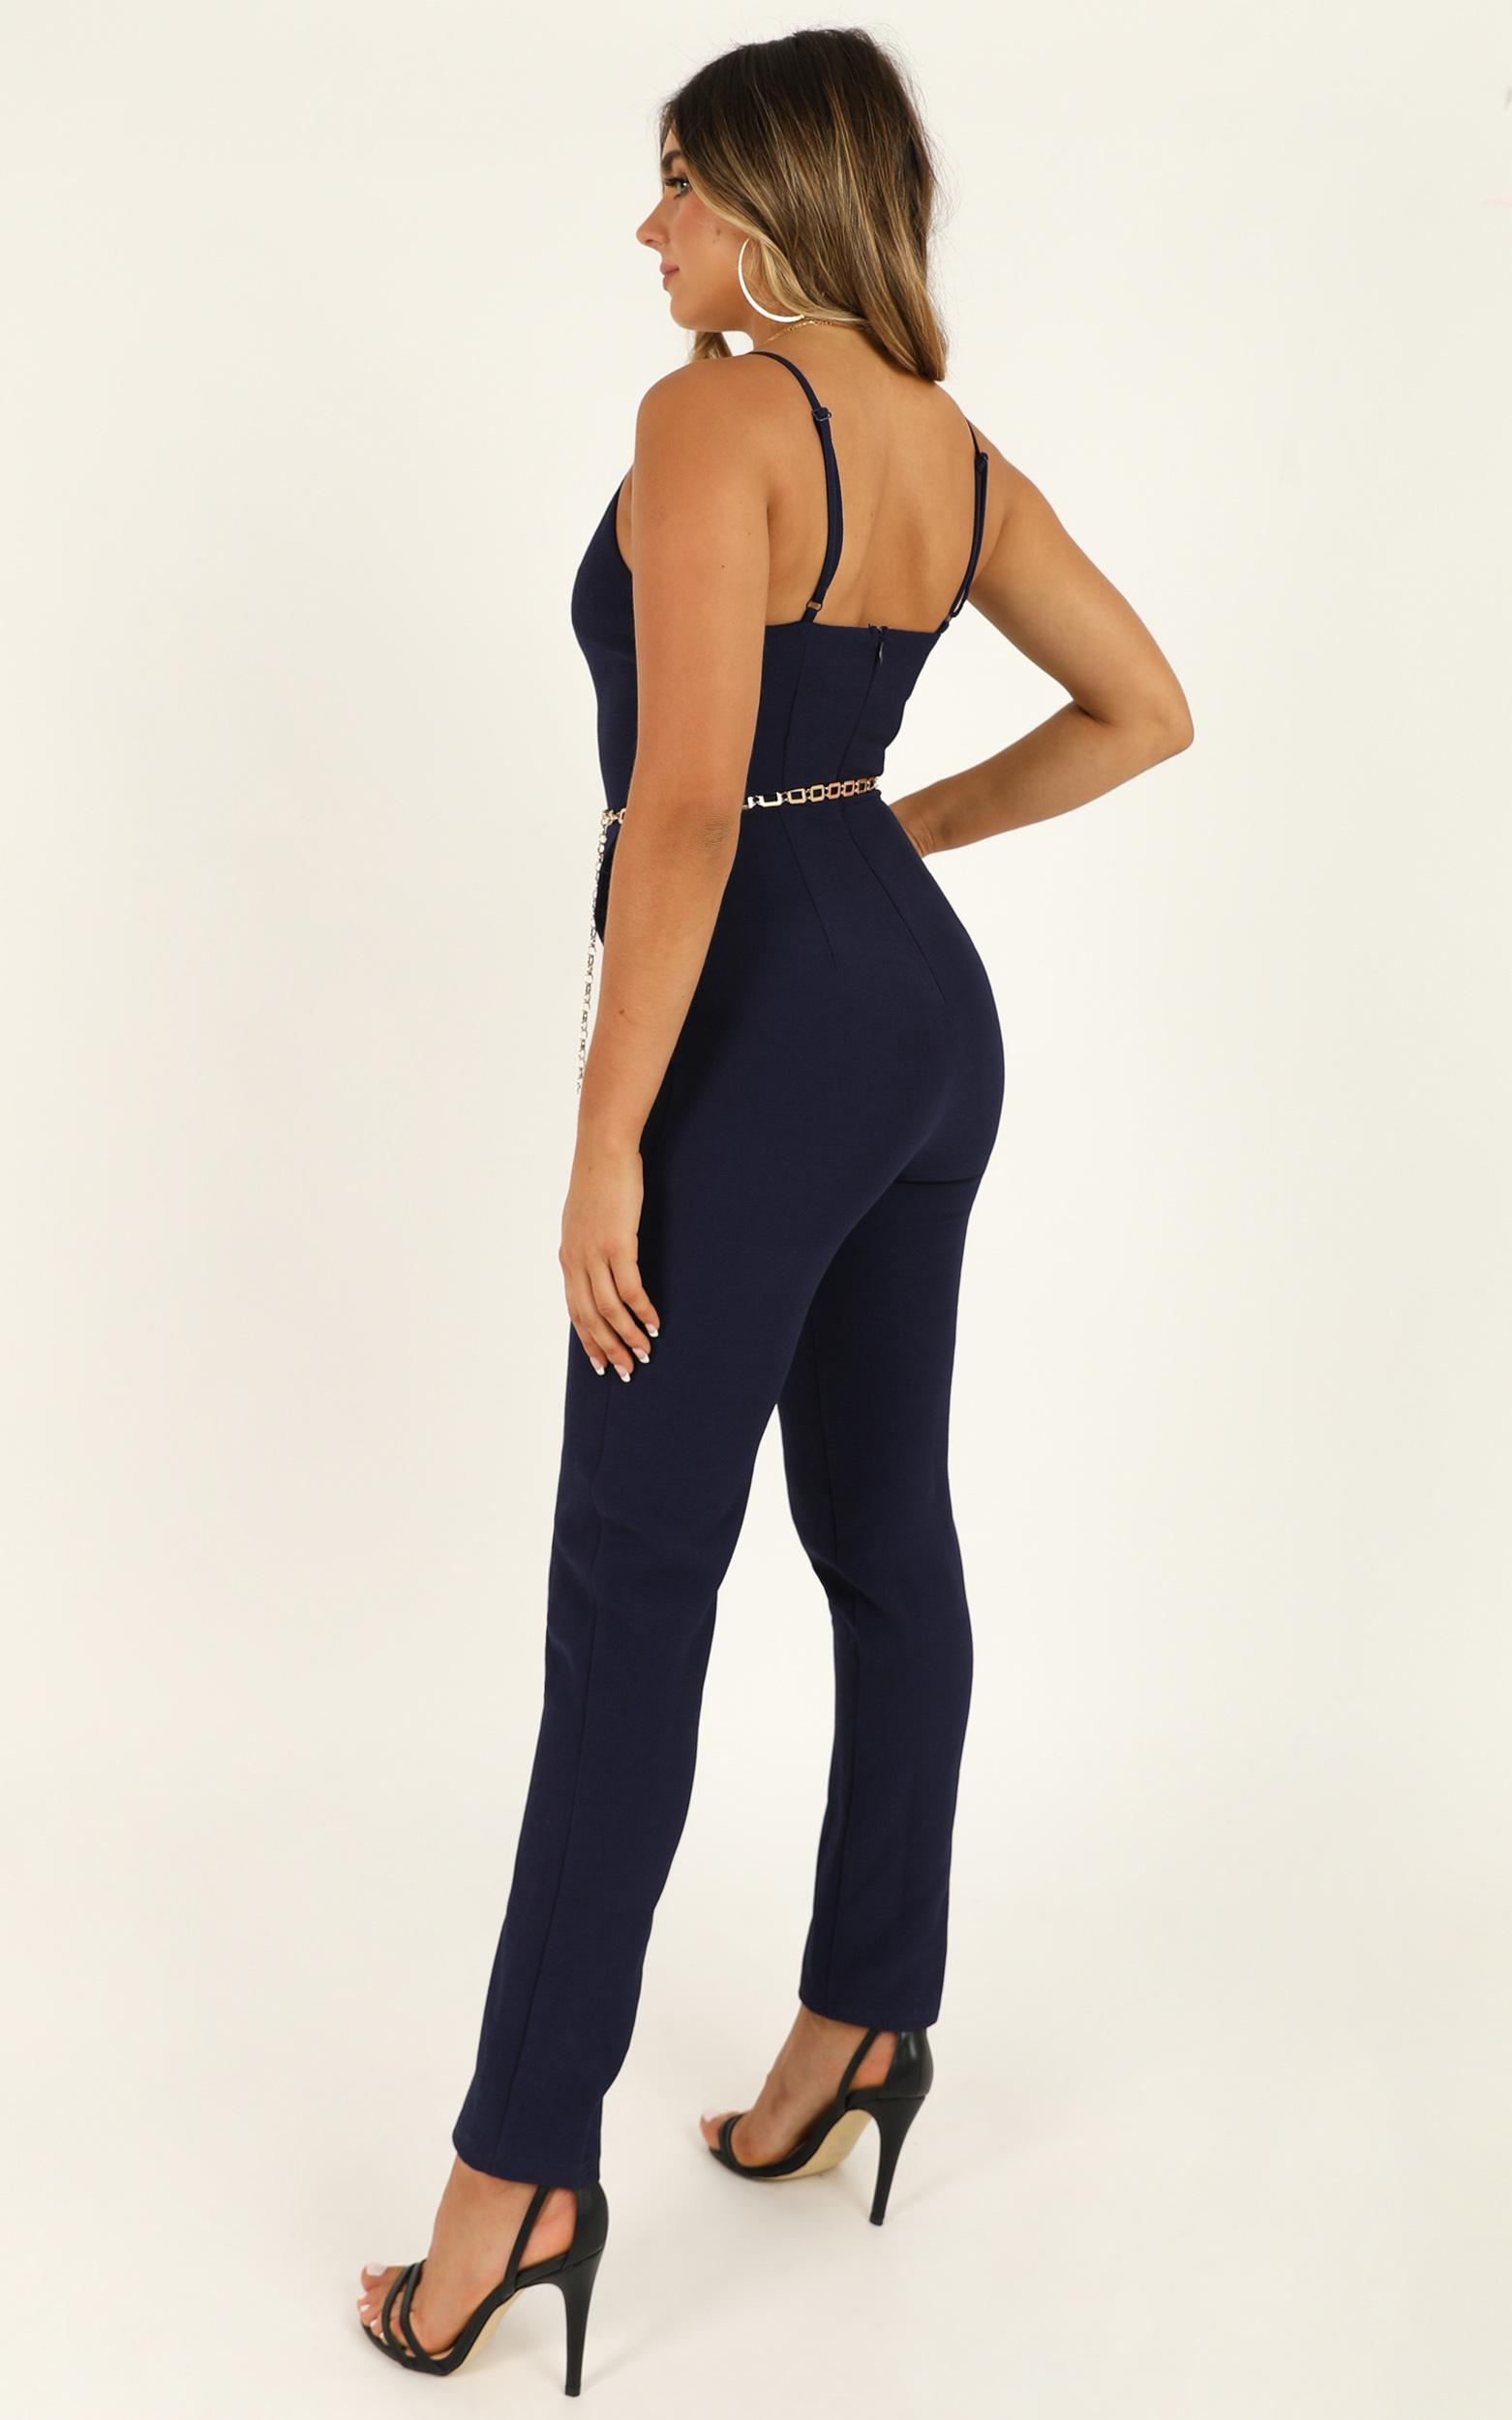 High Standards Jumpsuit in navy - 20 (XXXXL), Navy, hi-res image number null